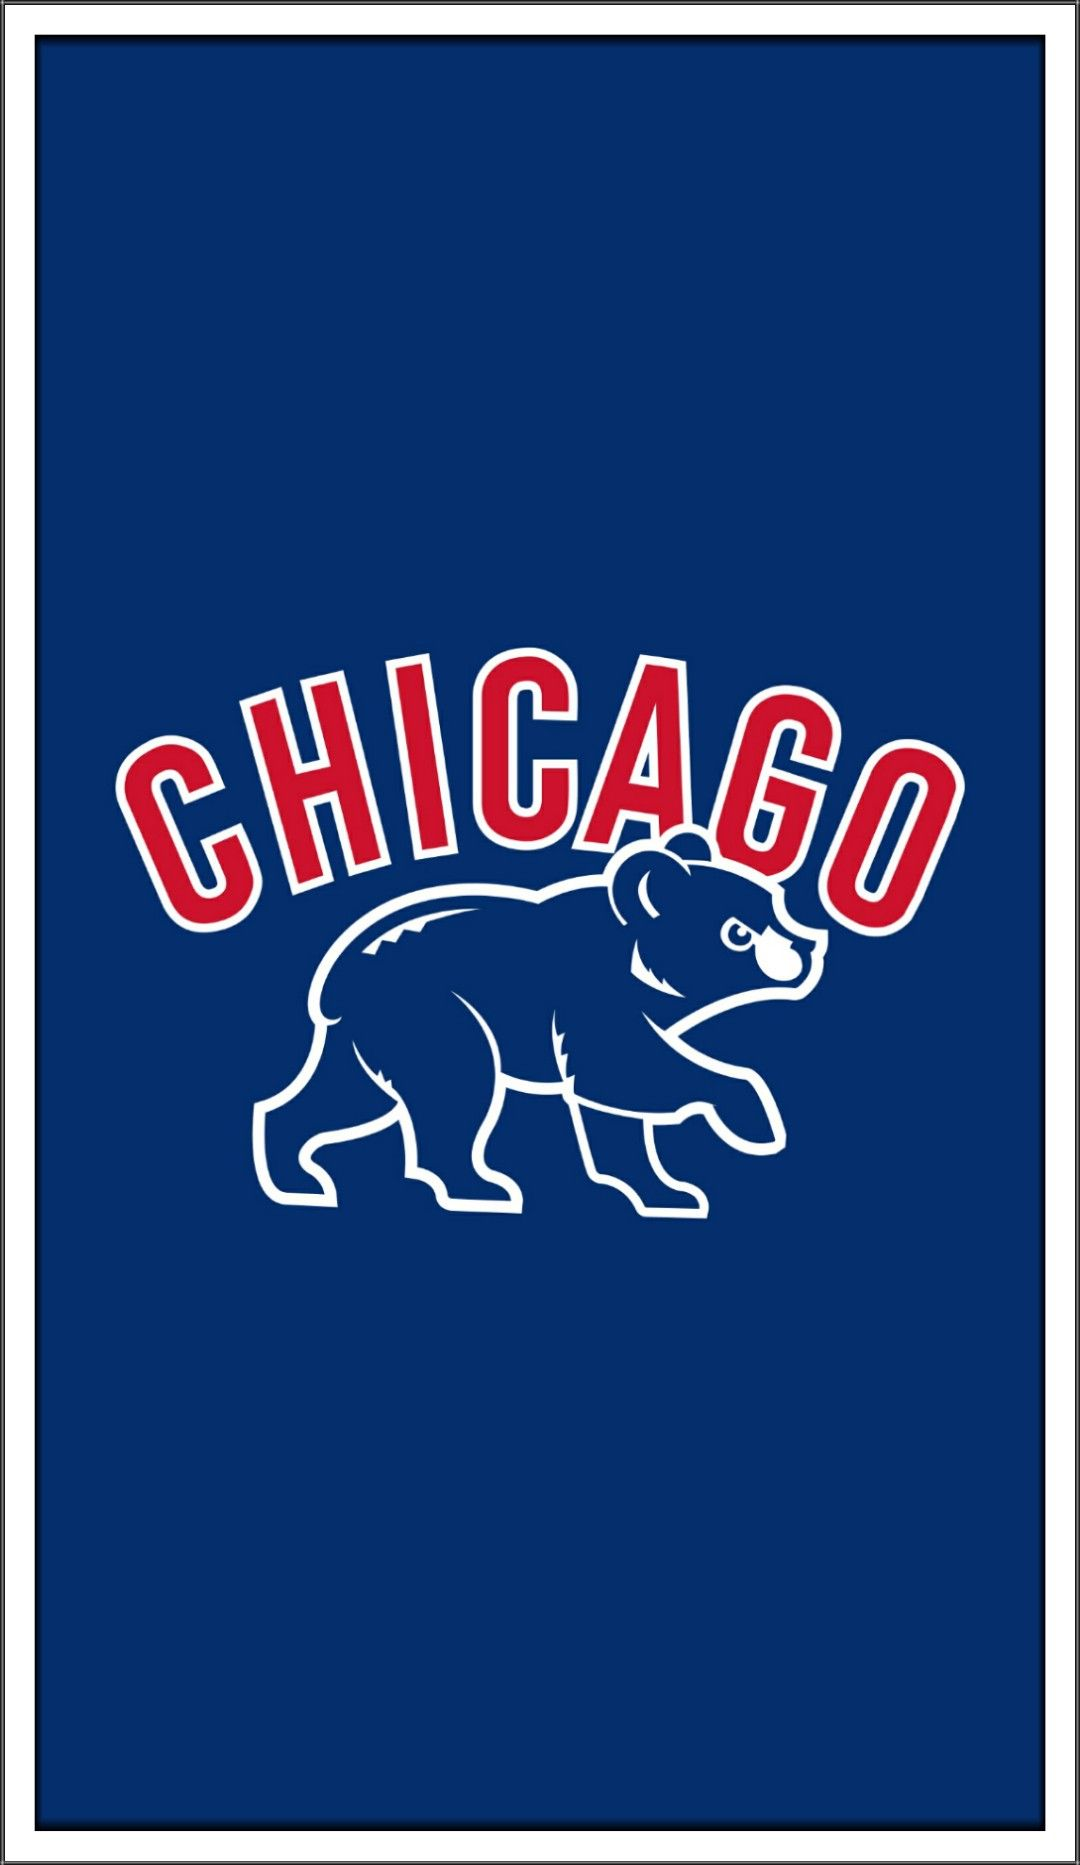 Chicago Cubs Walking Bear Chicago Cubs Wallpaper Mlb Chicago Cubs Chicago Cubs Baseball [ 1865 x 1080 Pixel ]